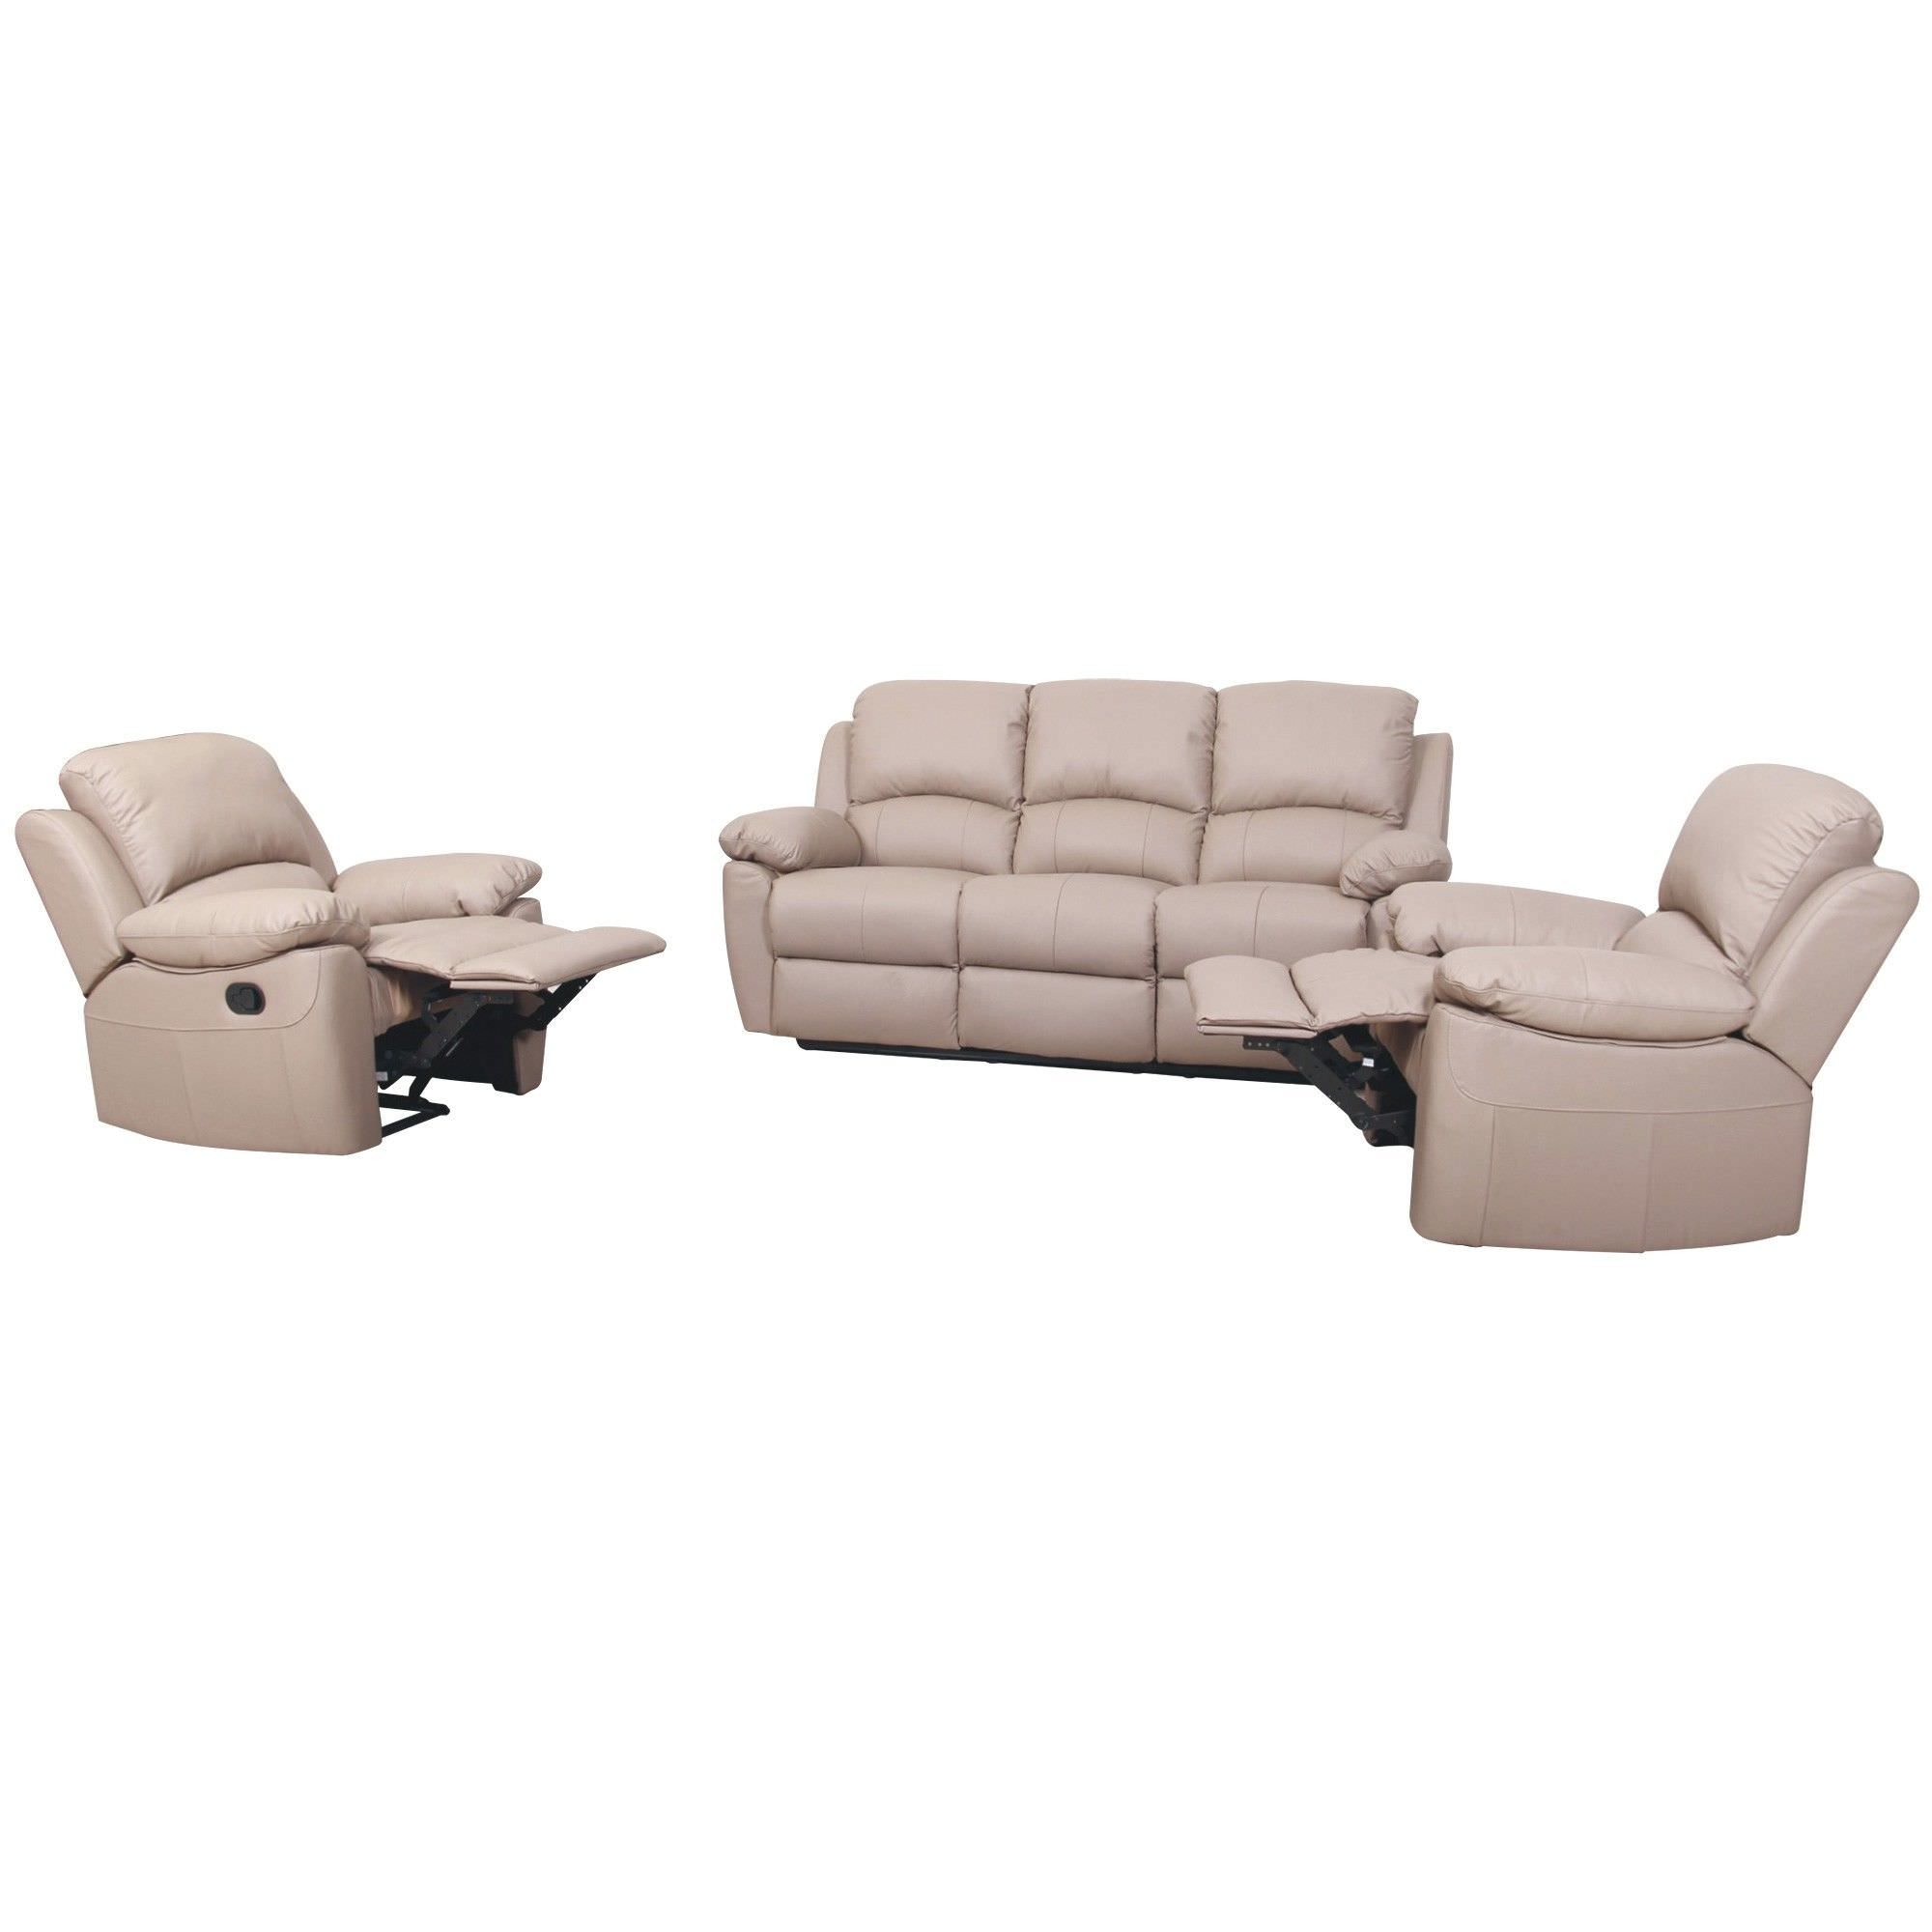 Connie Leather 3+1+1 Recliner Sofa Set, Taupe